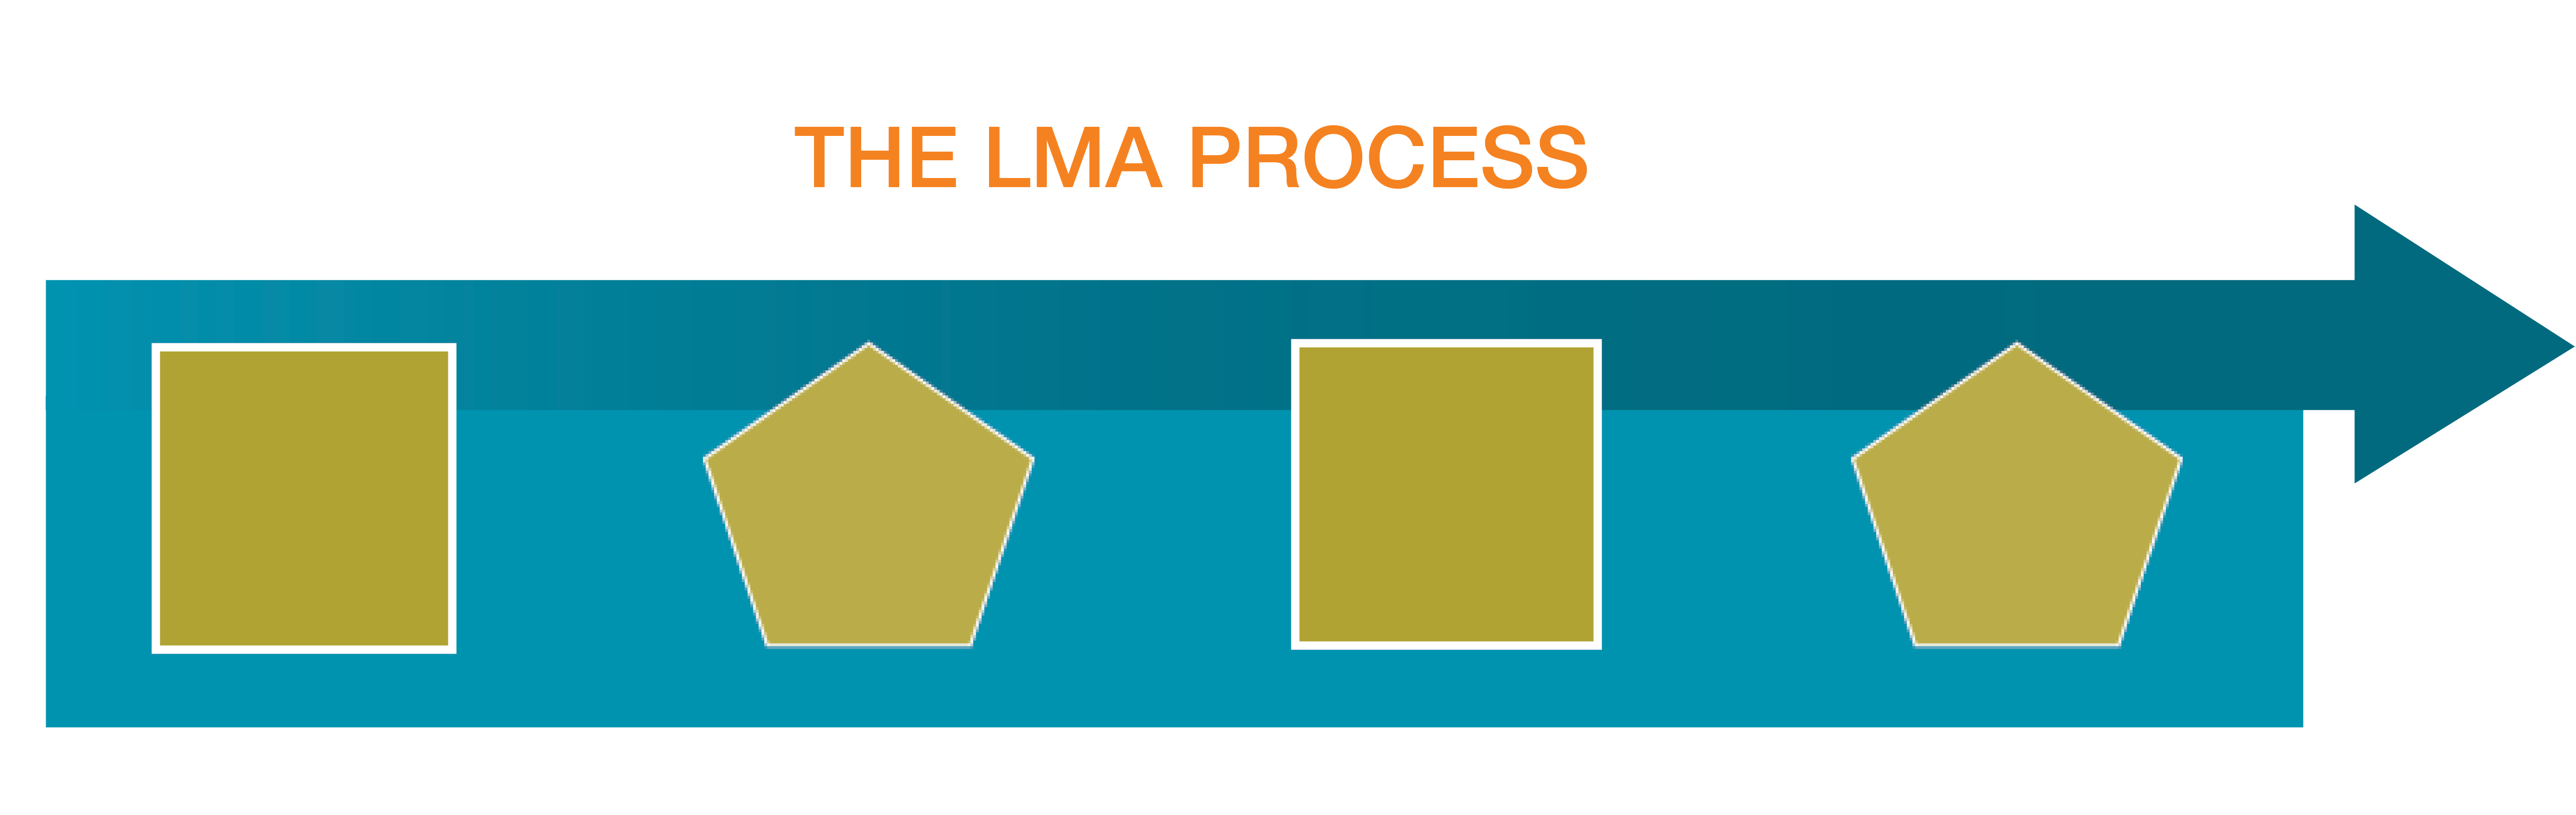 LMA Process Graphic Website